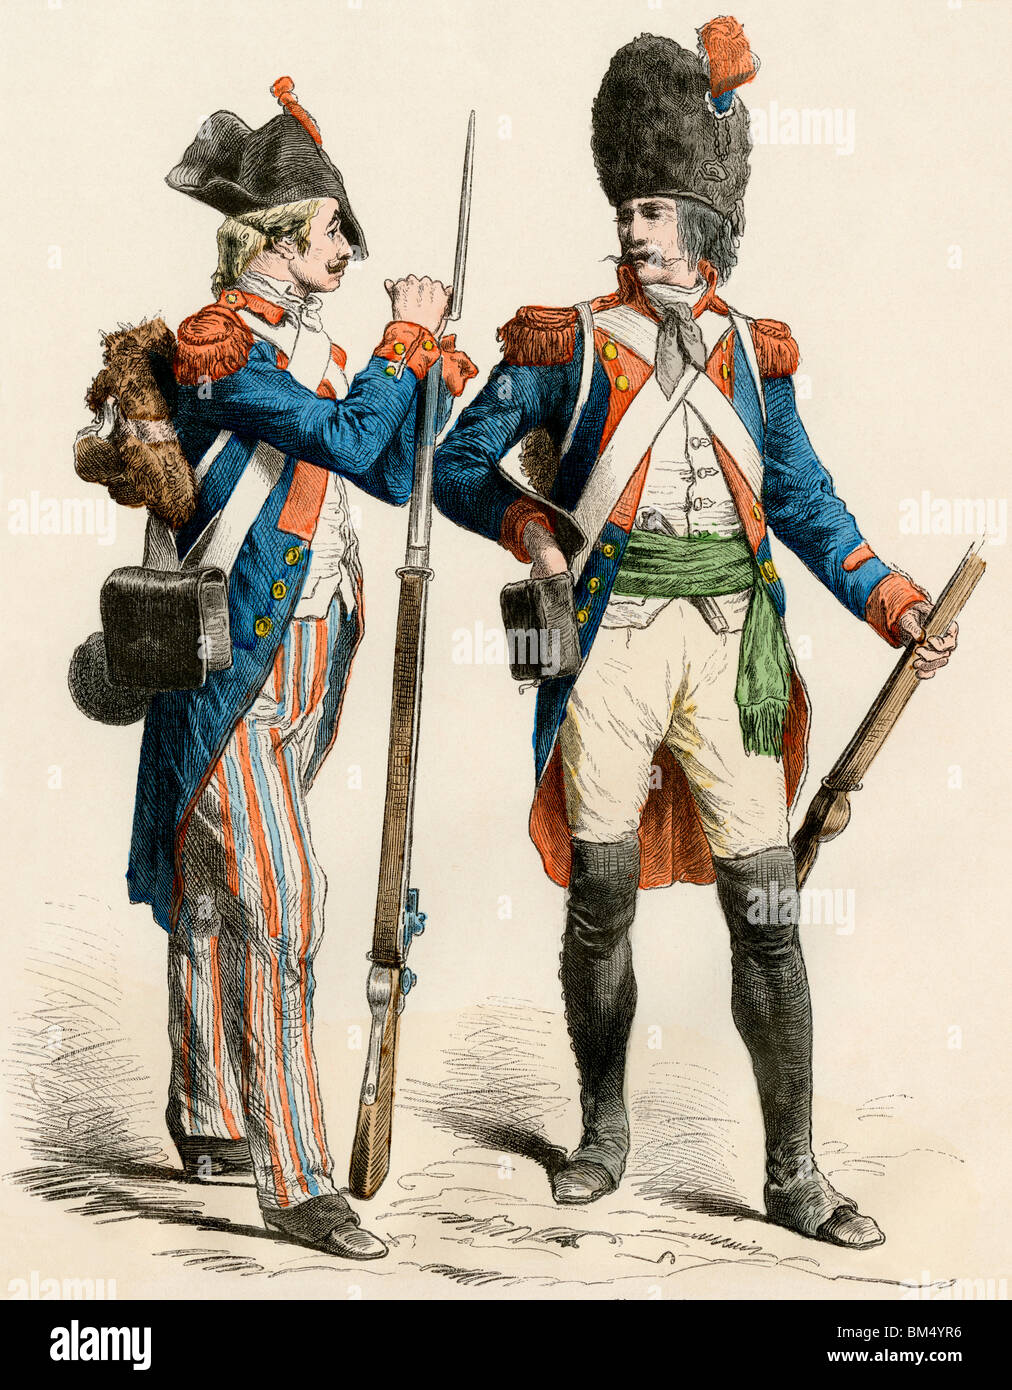 French infantry soldier of 1799 and a grenadier of 1795. Hand-colored print - Stock Image